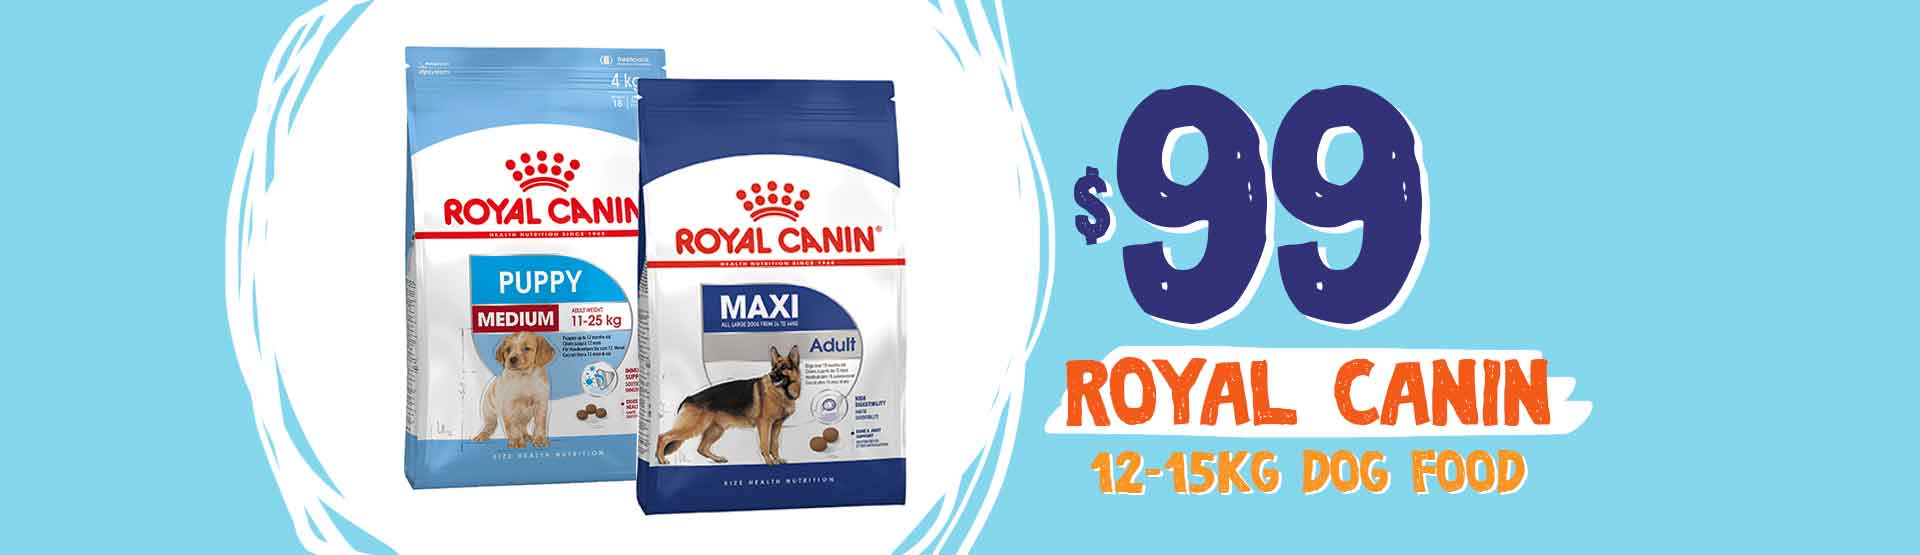 Now Just $99 for Royal Canin 12-15kg Bags Dog Food